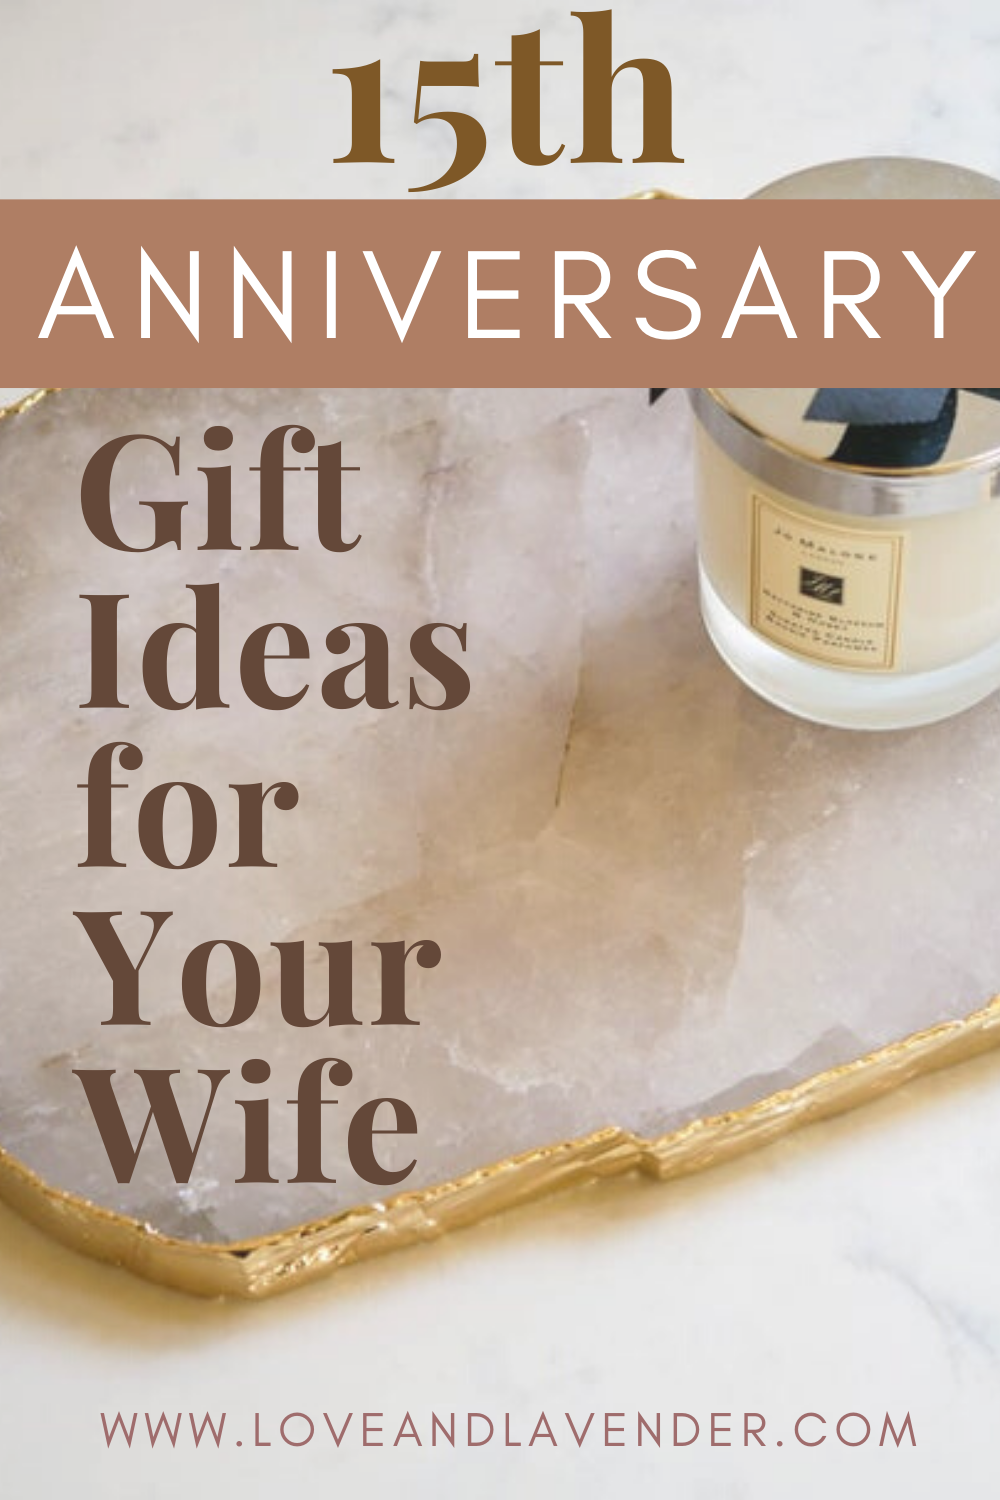 19 Crystal Gifts That Sparkle for a 15th Year Anniversary